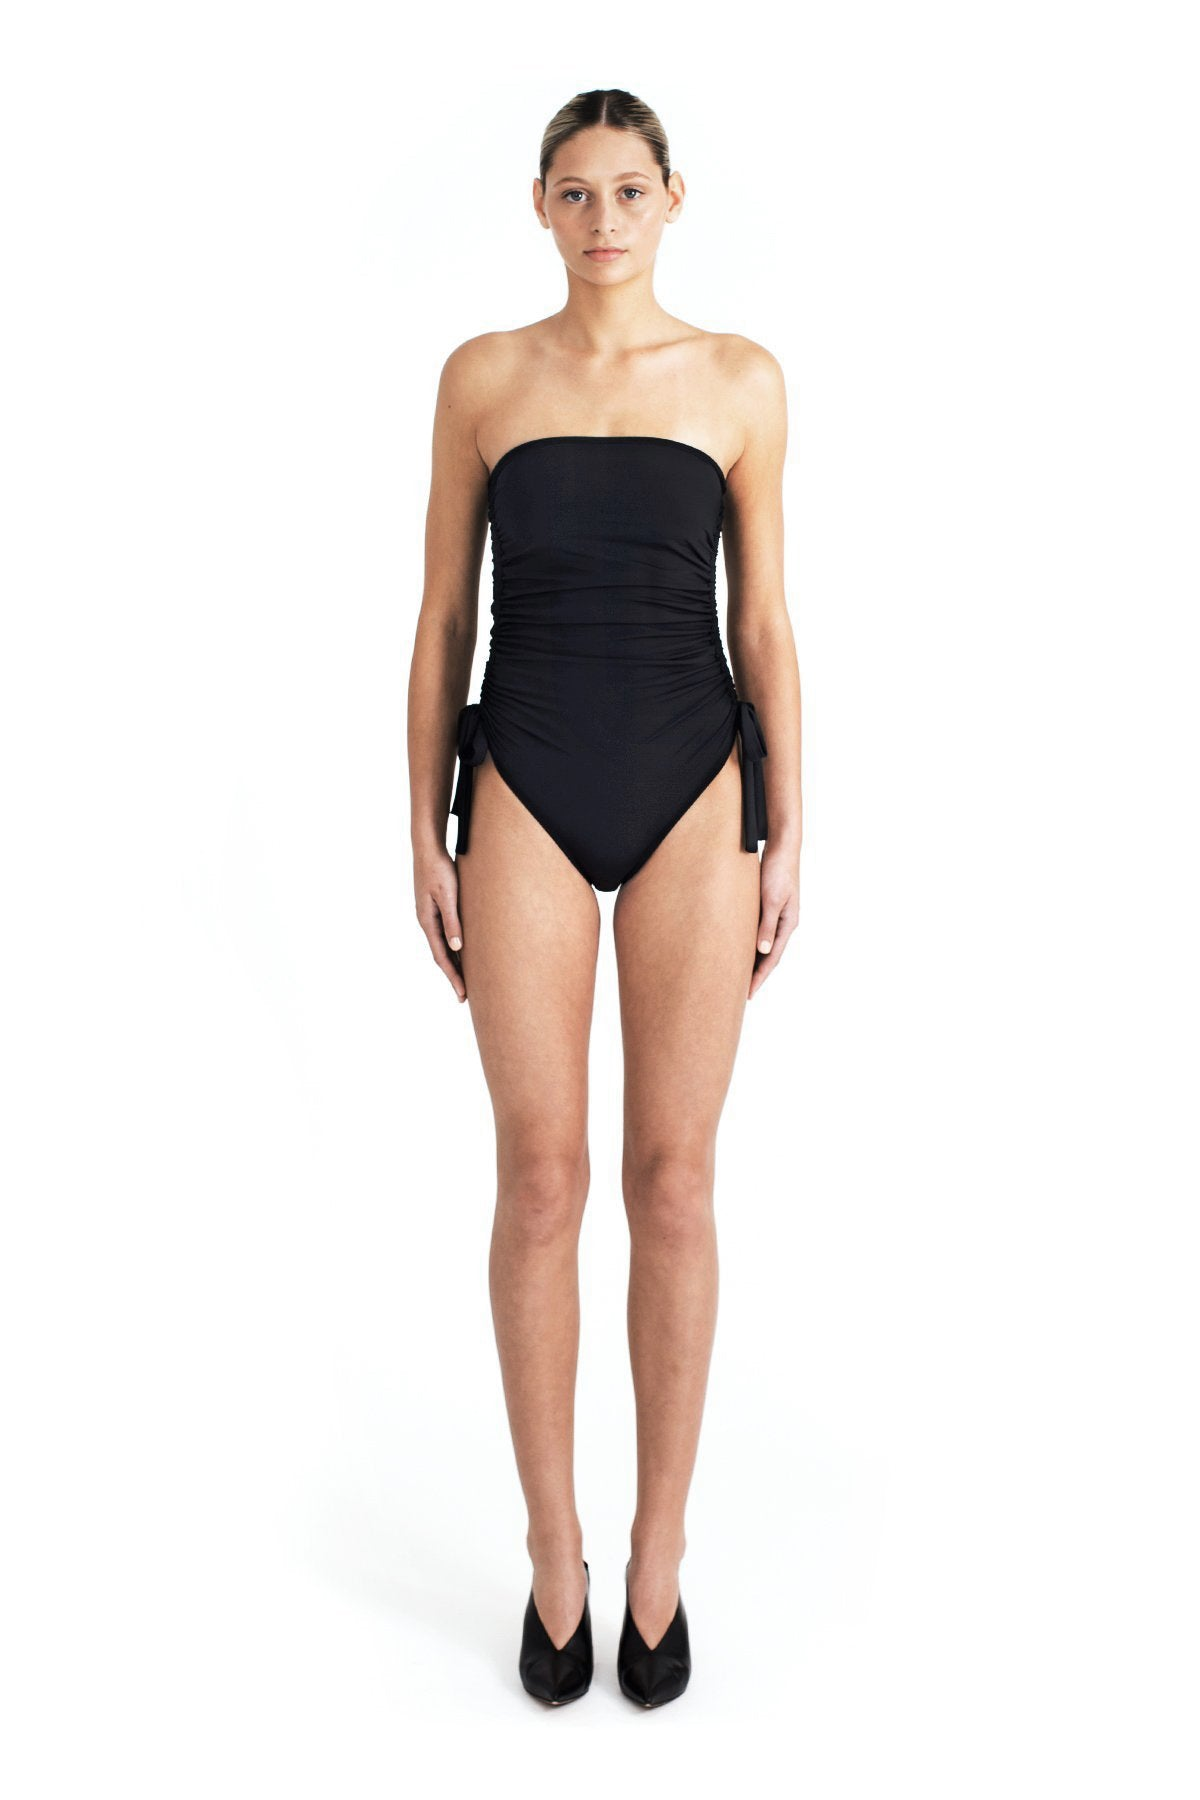 VENICE GATHERED ONE PIECE - BLACK